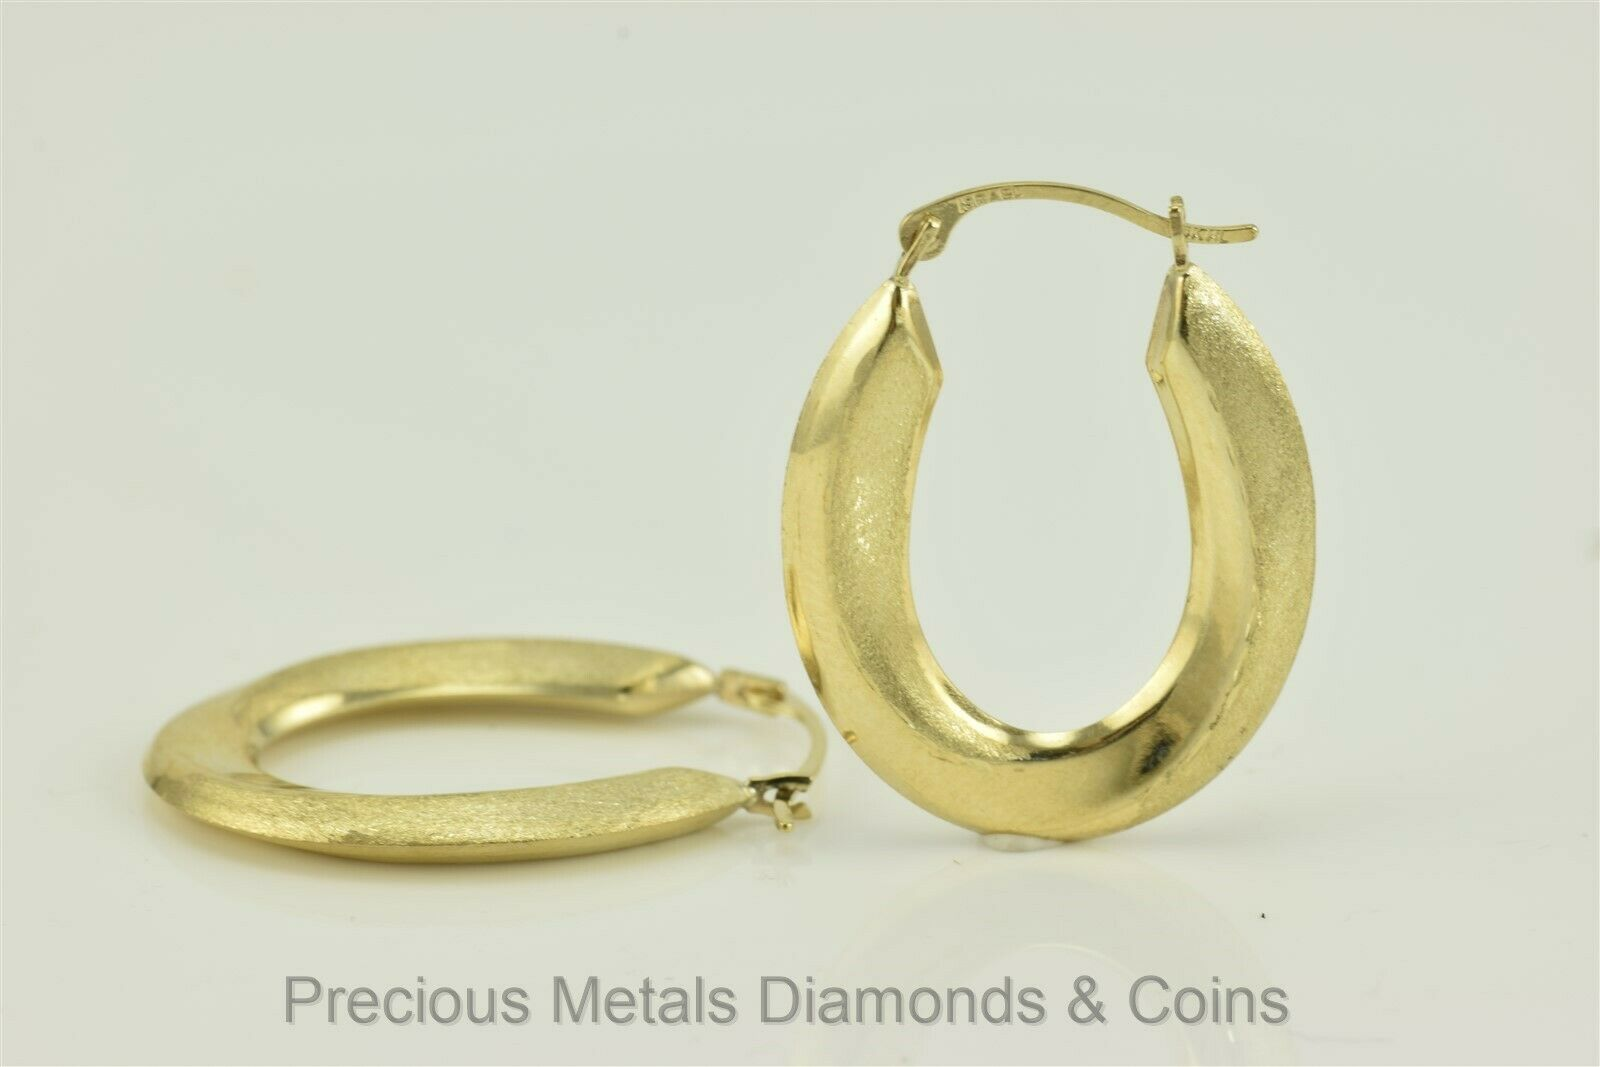 10k Yellow gold 25mm x 19mm Polished & Satin Oblong Hoop Earrings NEW